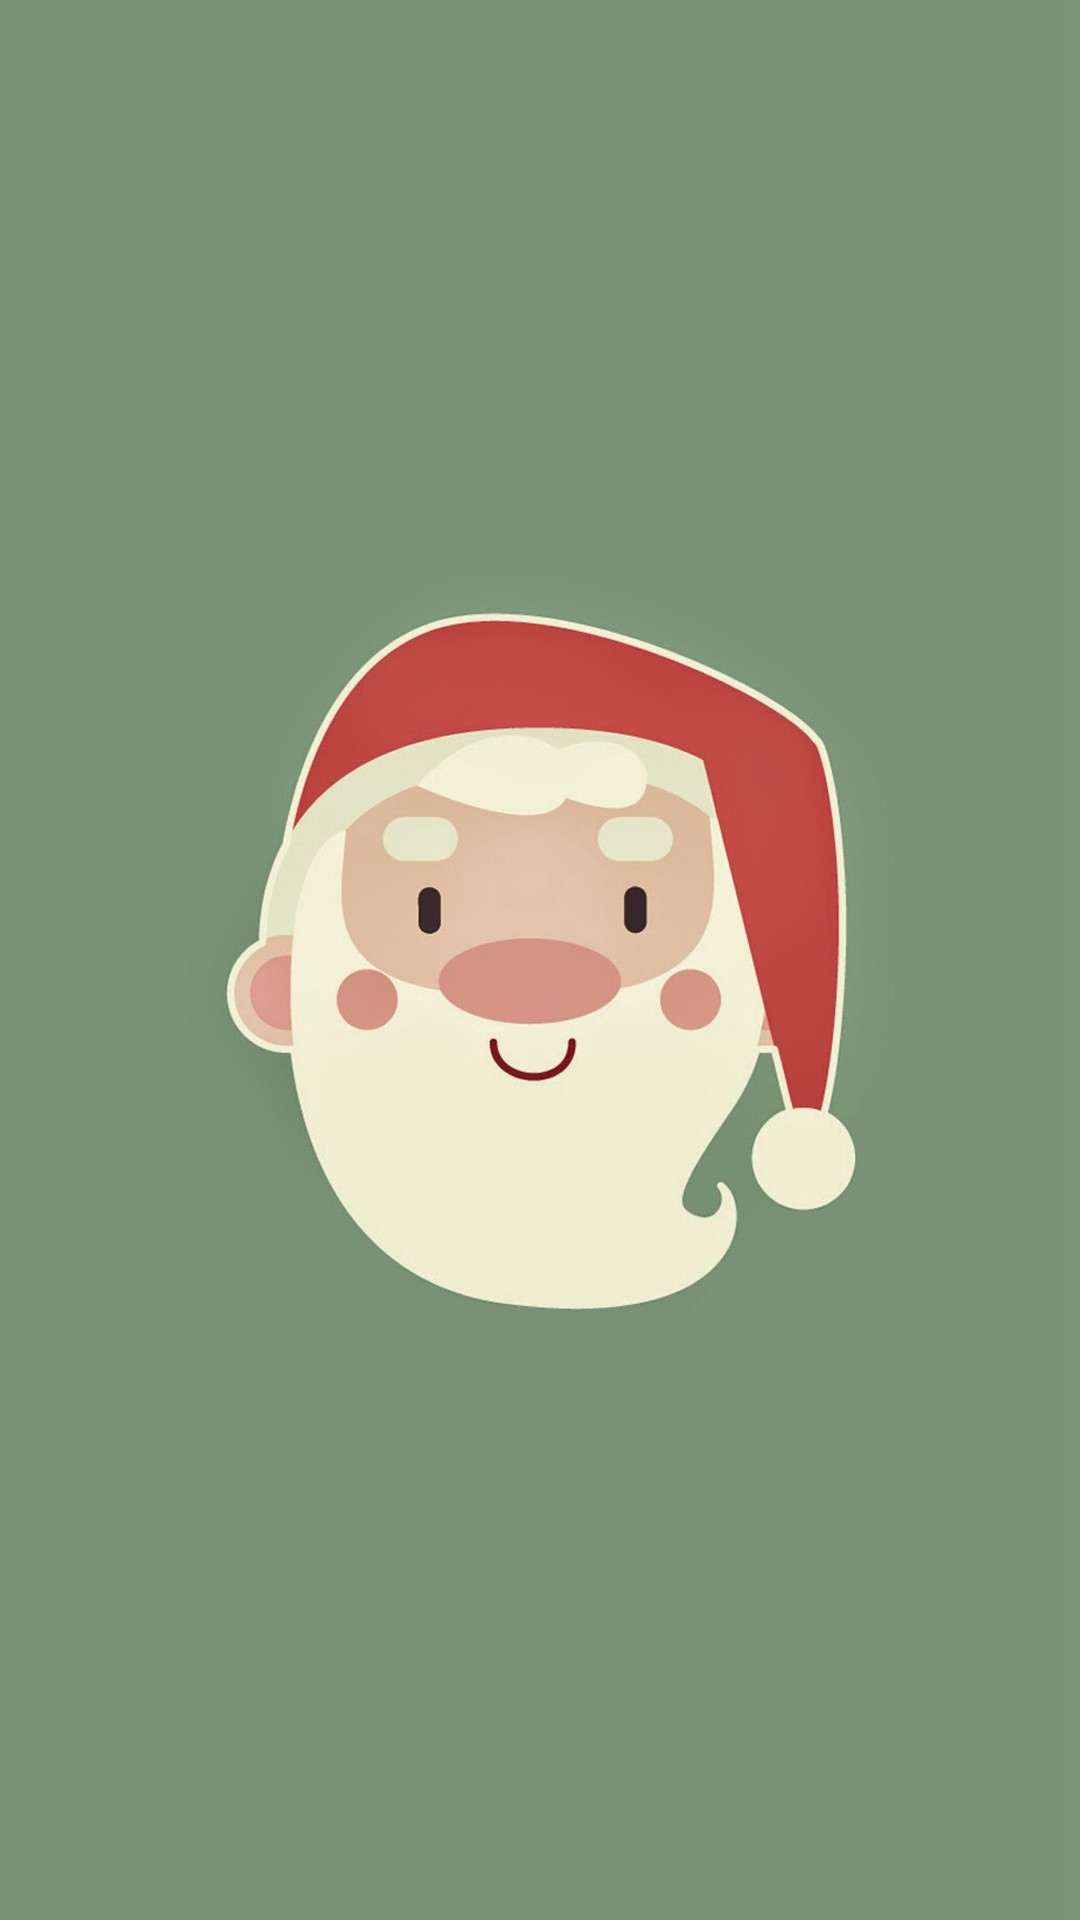 1080x1920 Cute Santa Claus Minimal Illustration iPhone 8 wallpaper